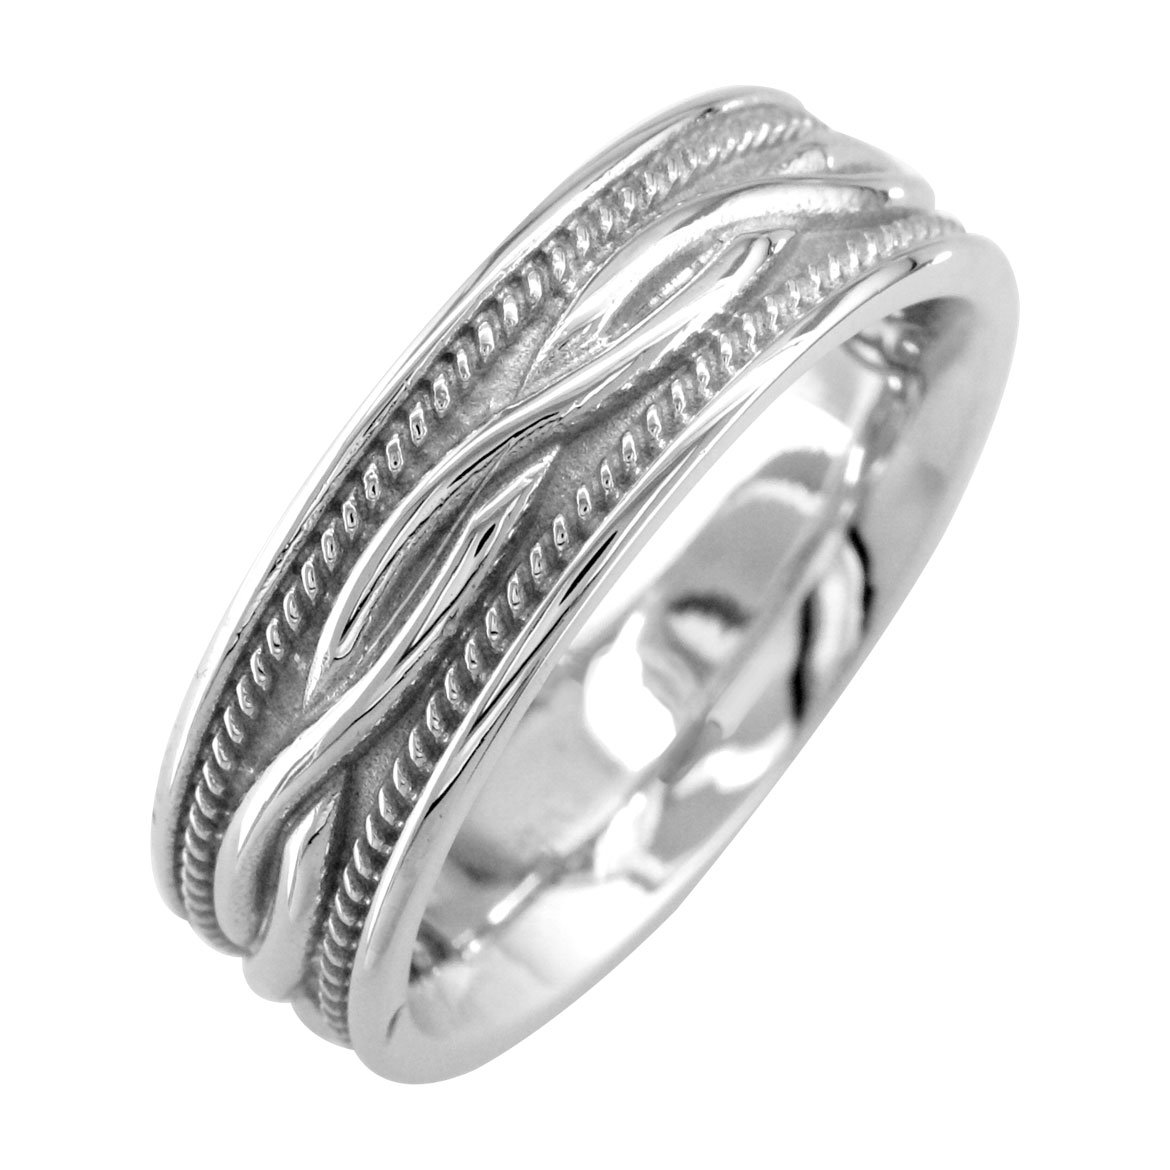 Wide Infinity Wedding Band with Rope Design in Sterling Silver, 8mm size 8.5 by Sziro Infinity Wedding Bands